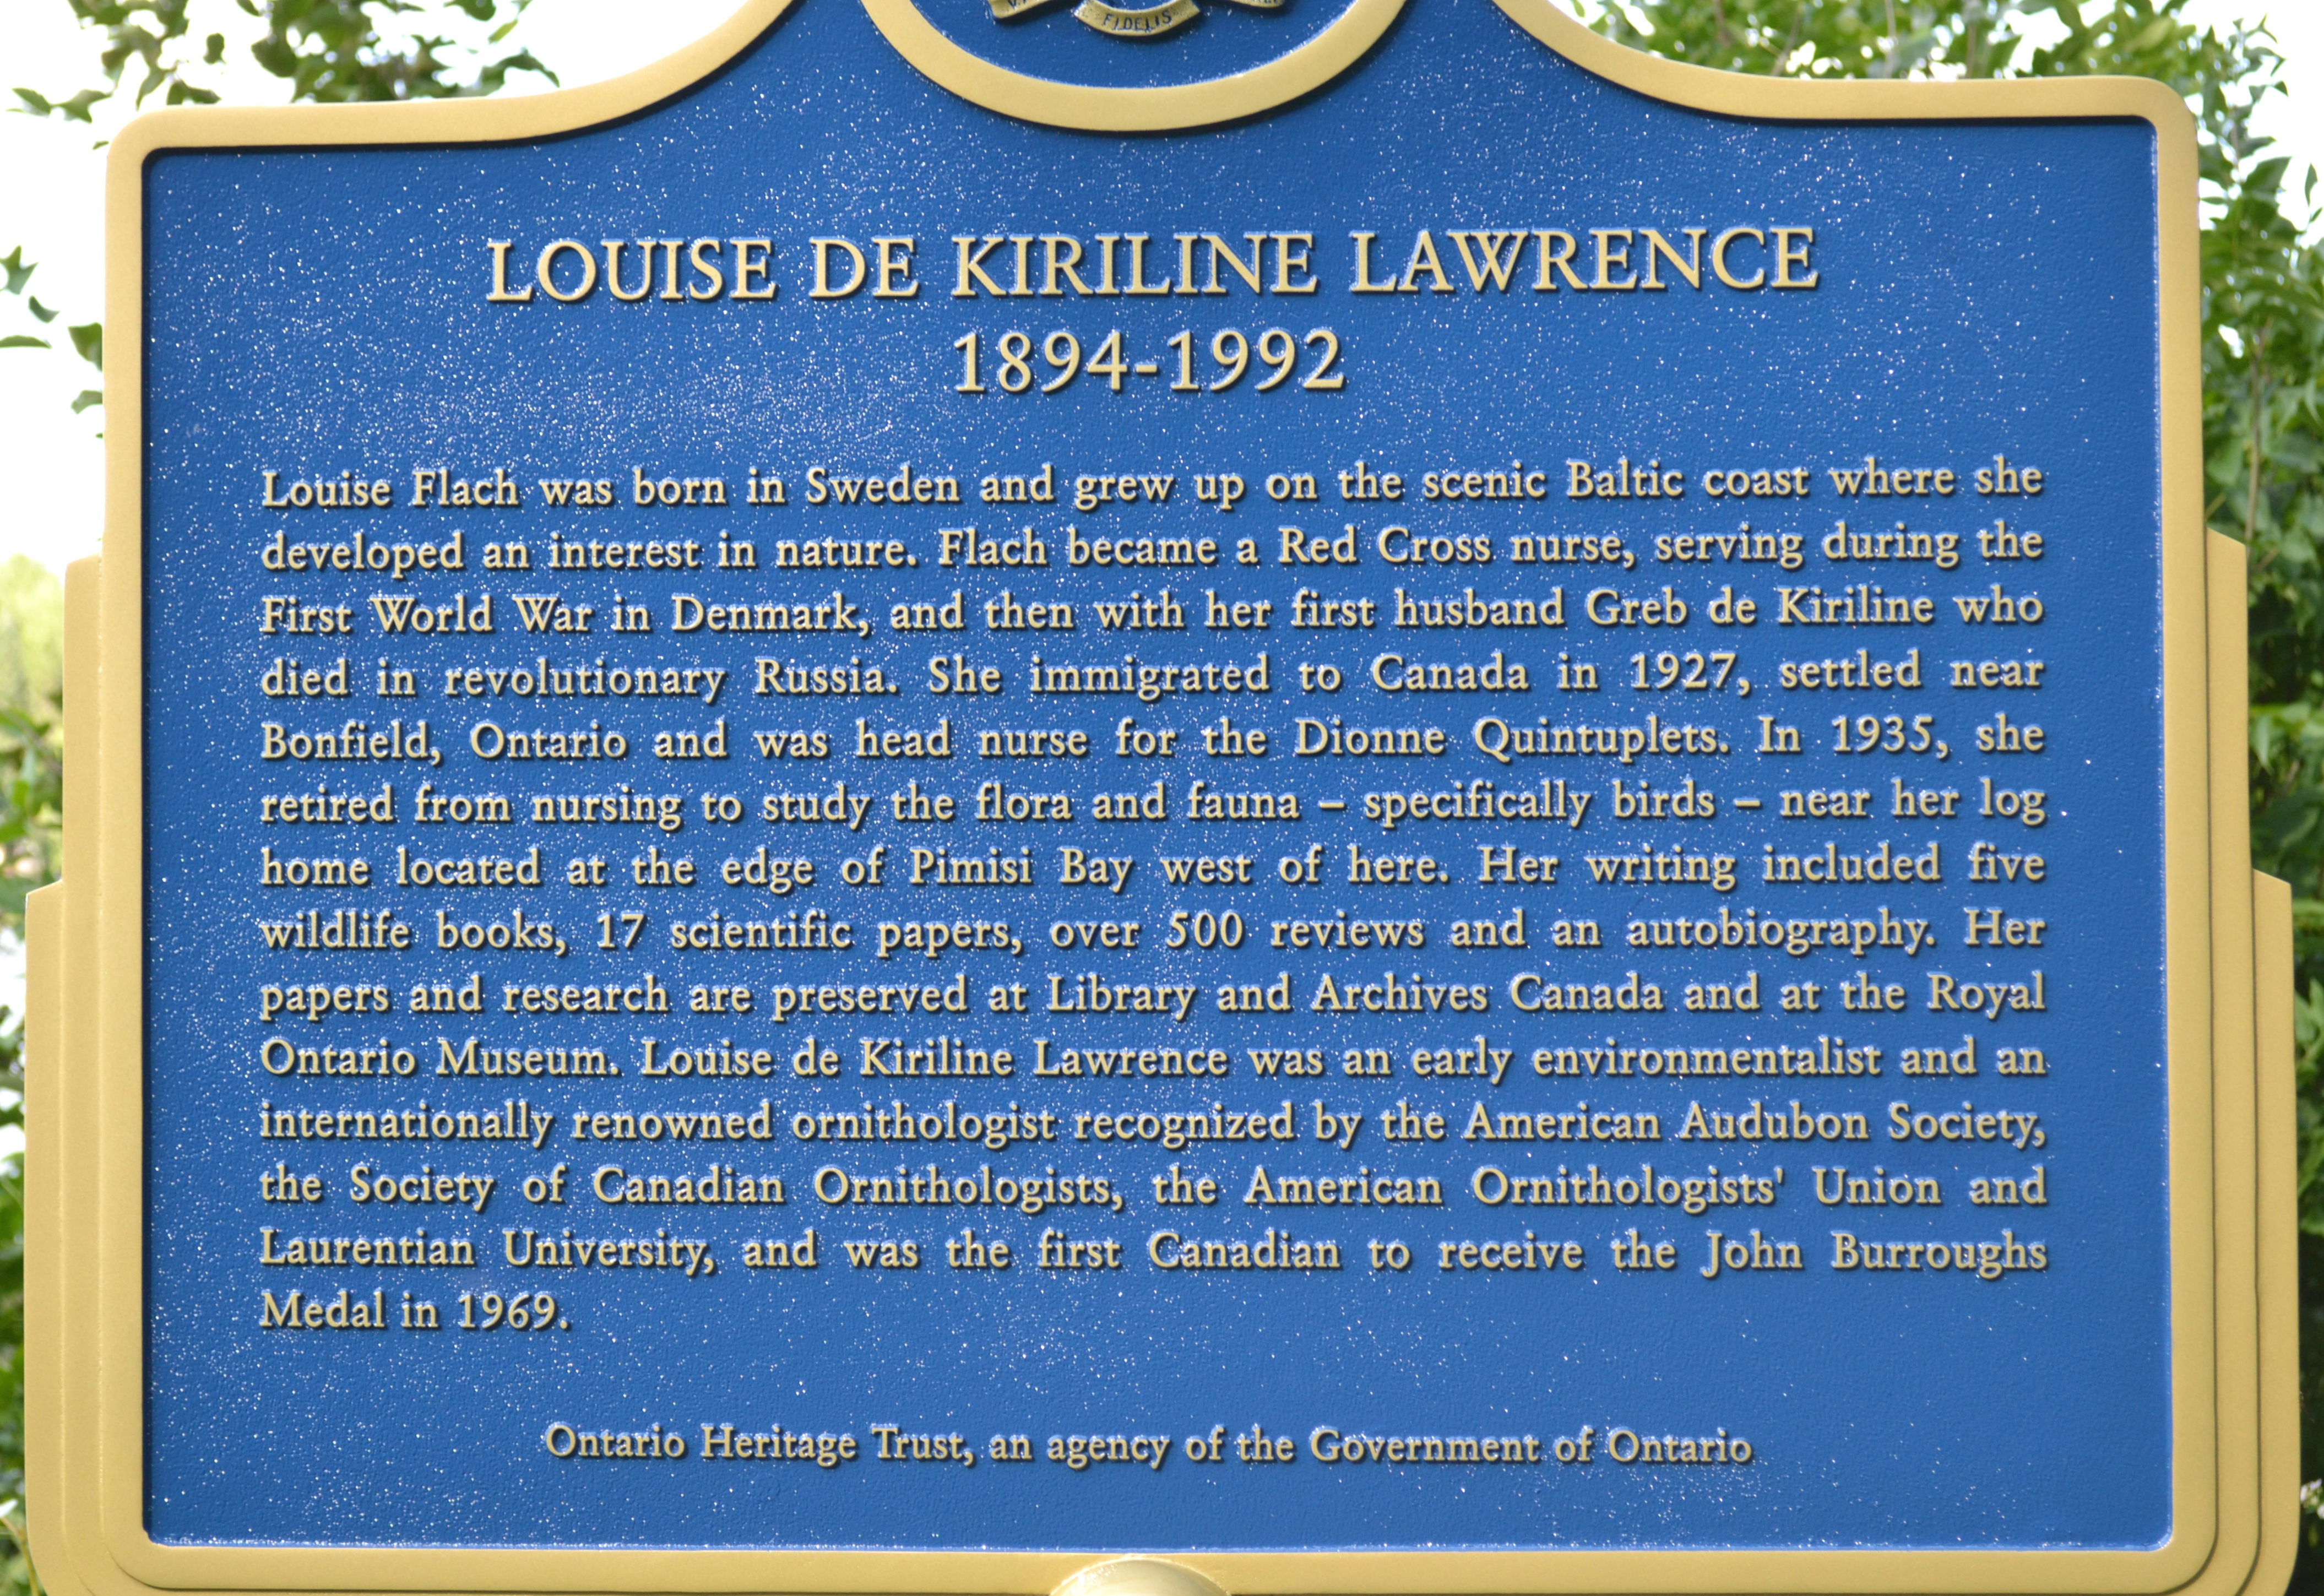 Louise de Kiriline Lawrence